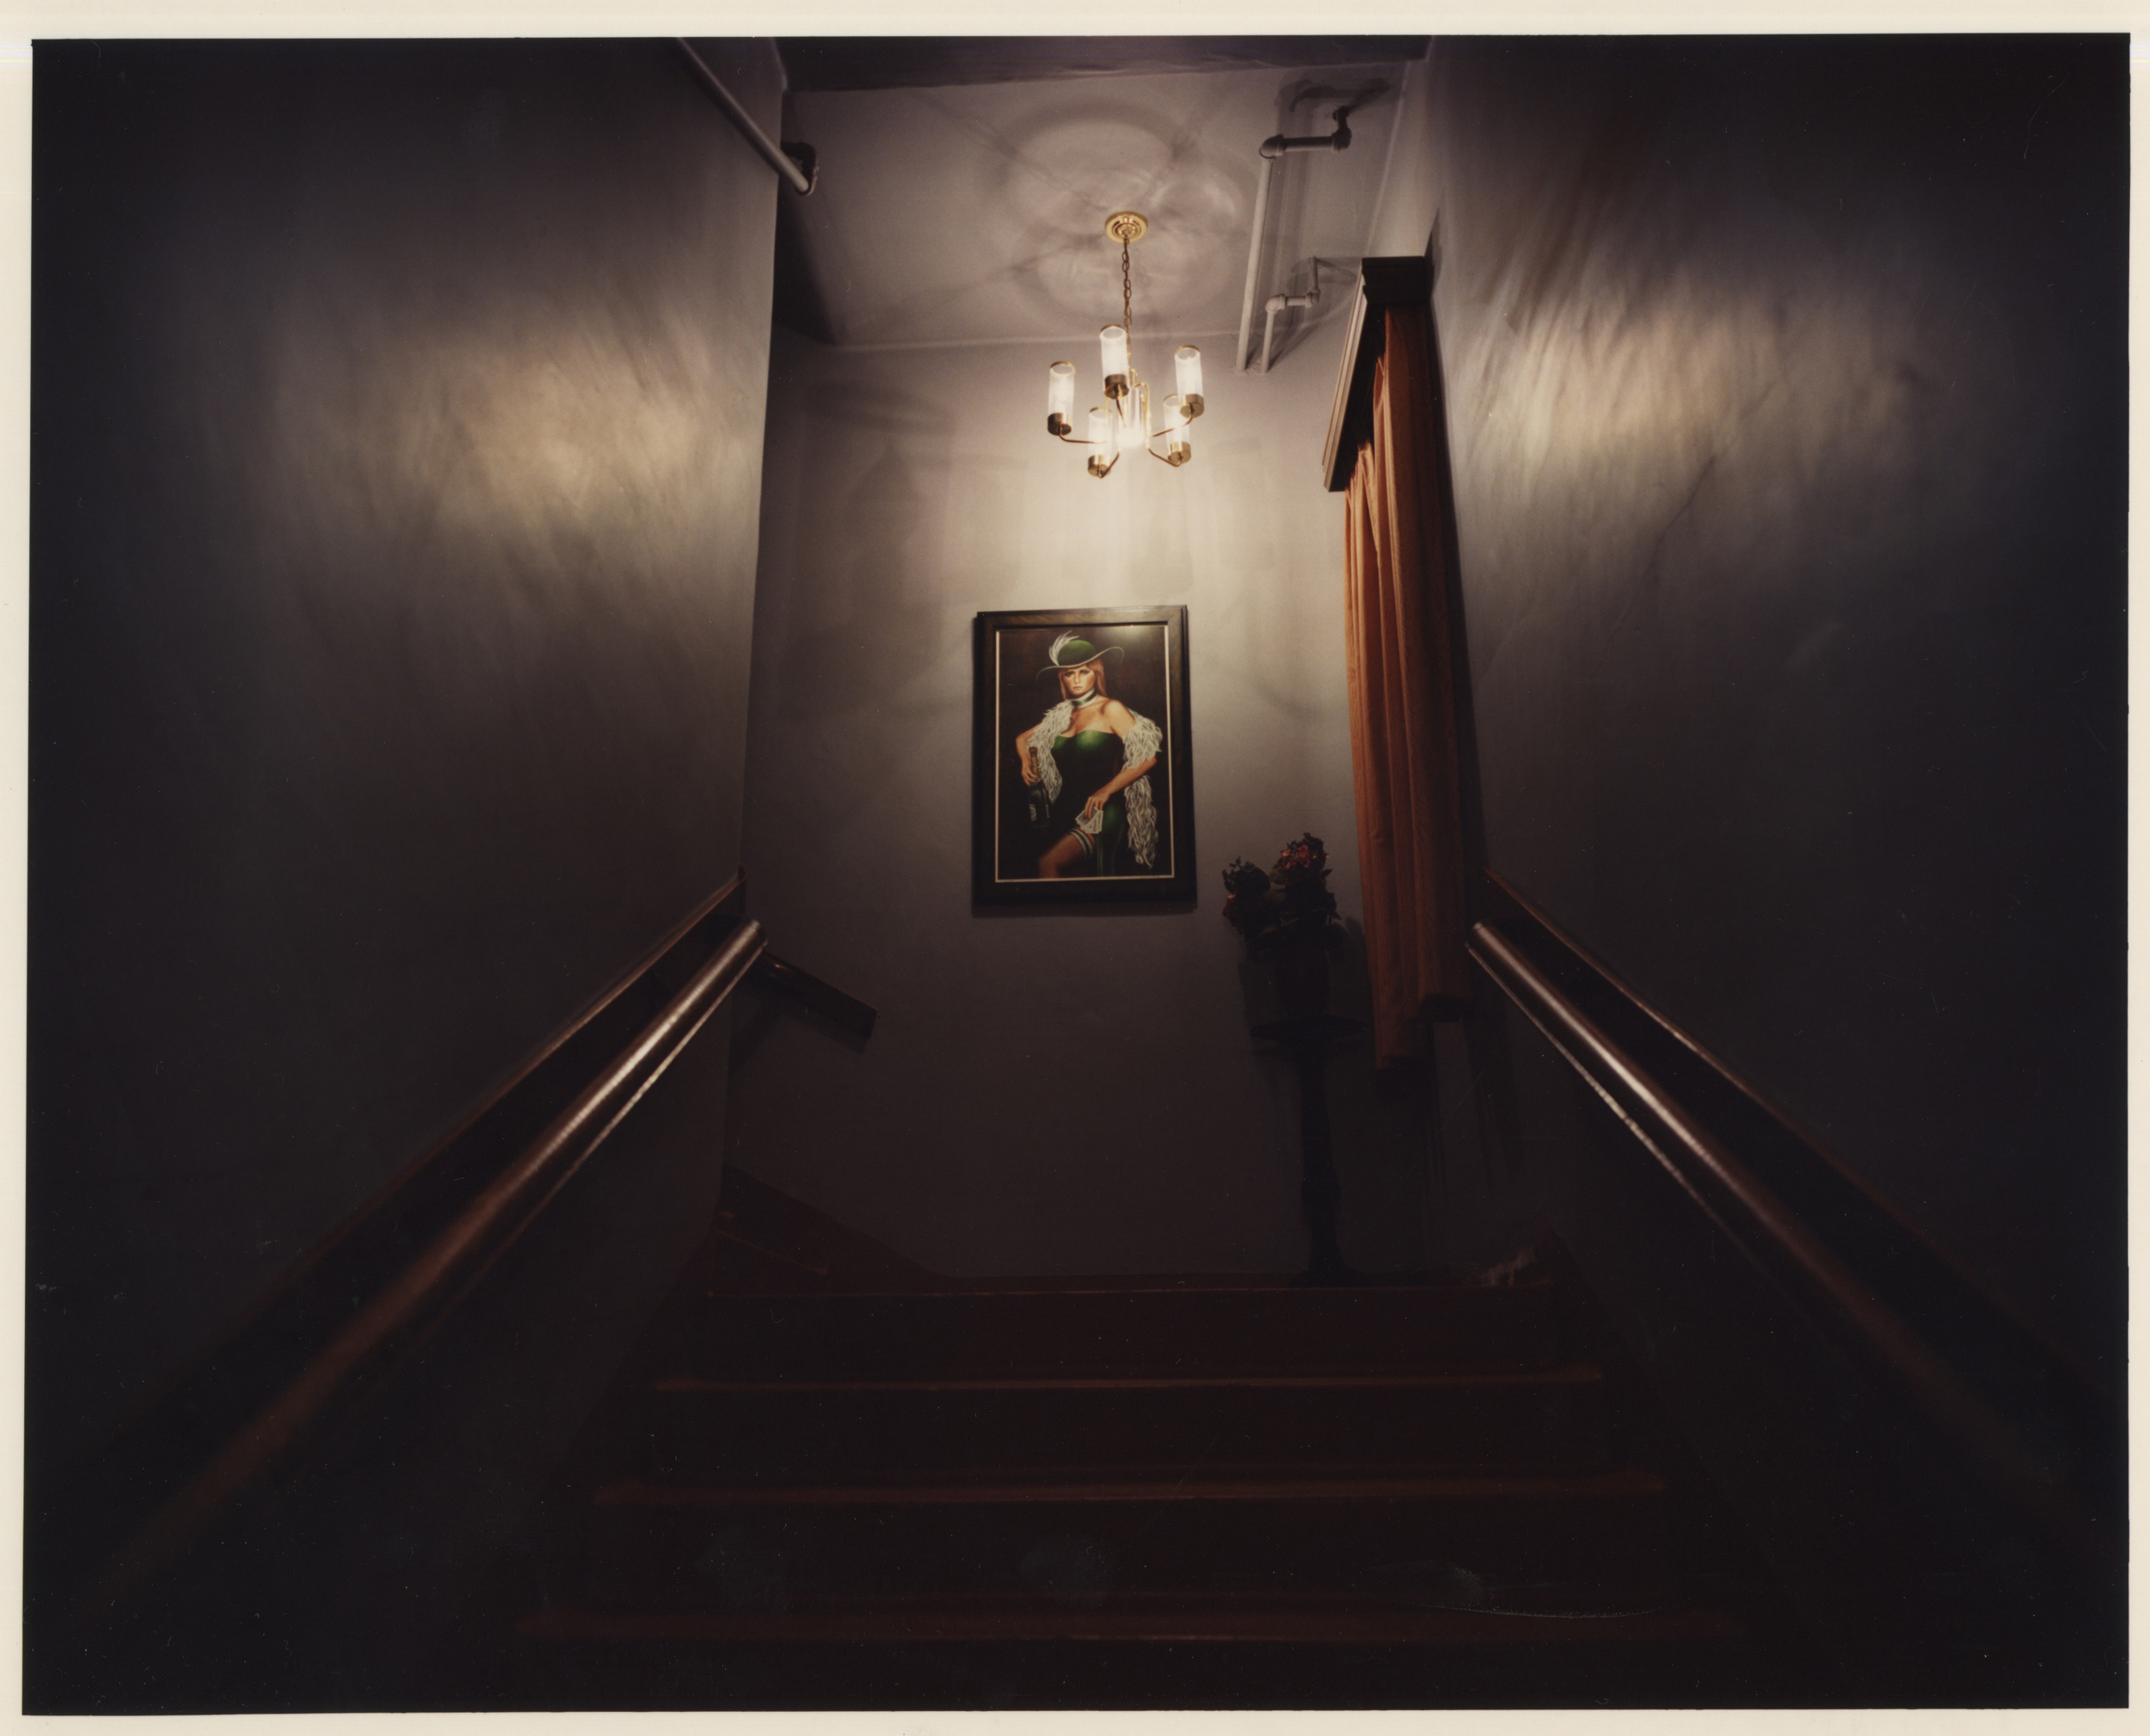 Lucy Levene  L.A. Stories (Untitled 10) , 2009 C-type print (AP 1/2) 20 x 24 inches